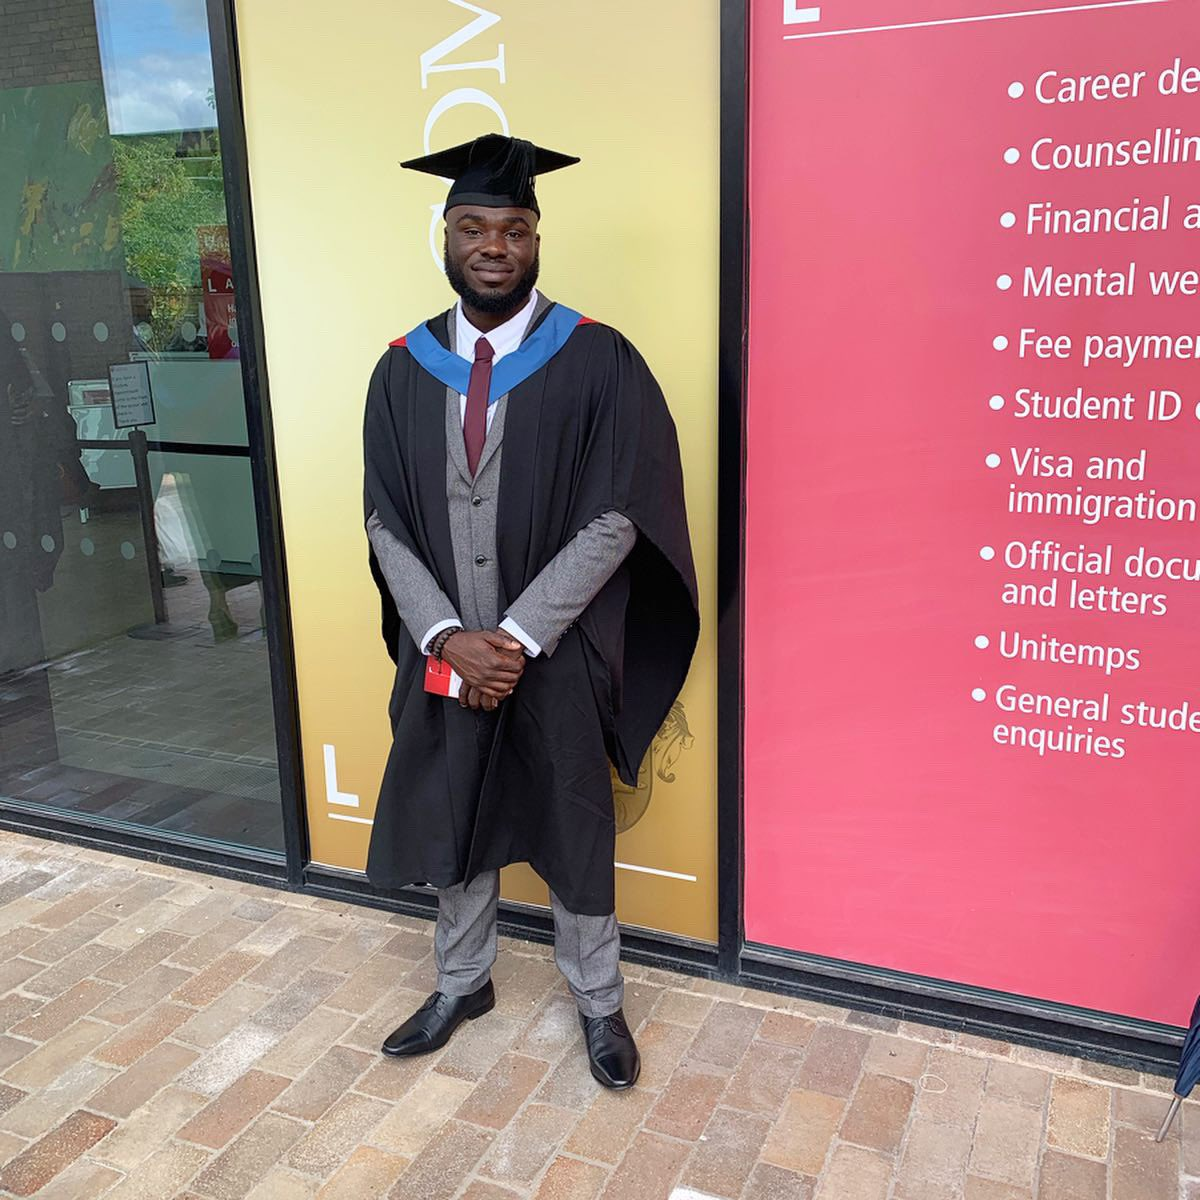 Bachelors of Science (honours) in Neuroscience una, these 3 years have not been easy but alhamdulillah I managed to pull through  #Classof2019<br>http://pic.twitter.com/6EITo4S9fJ